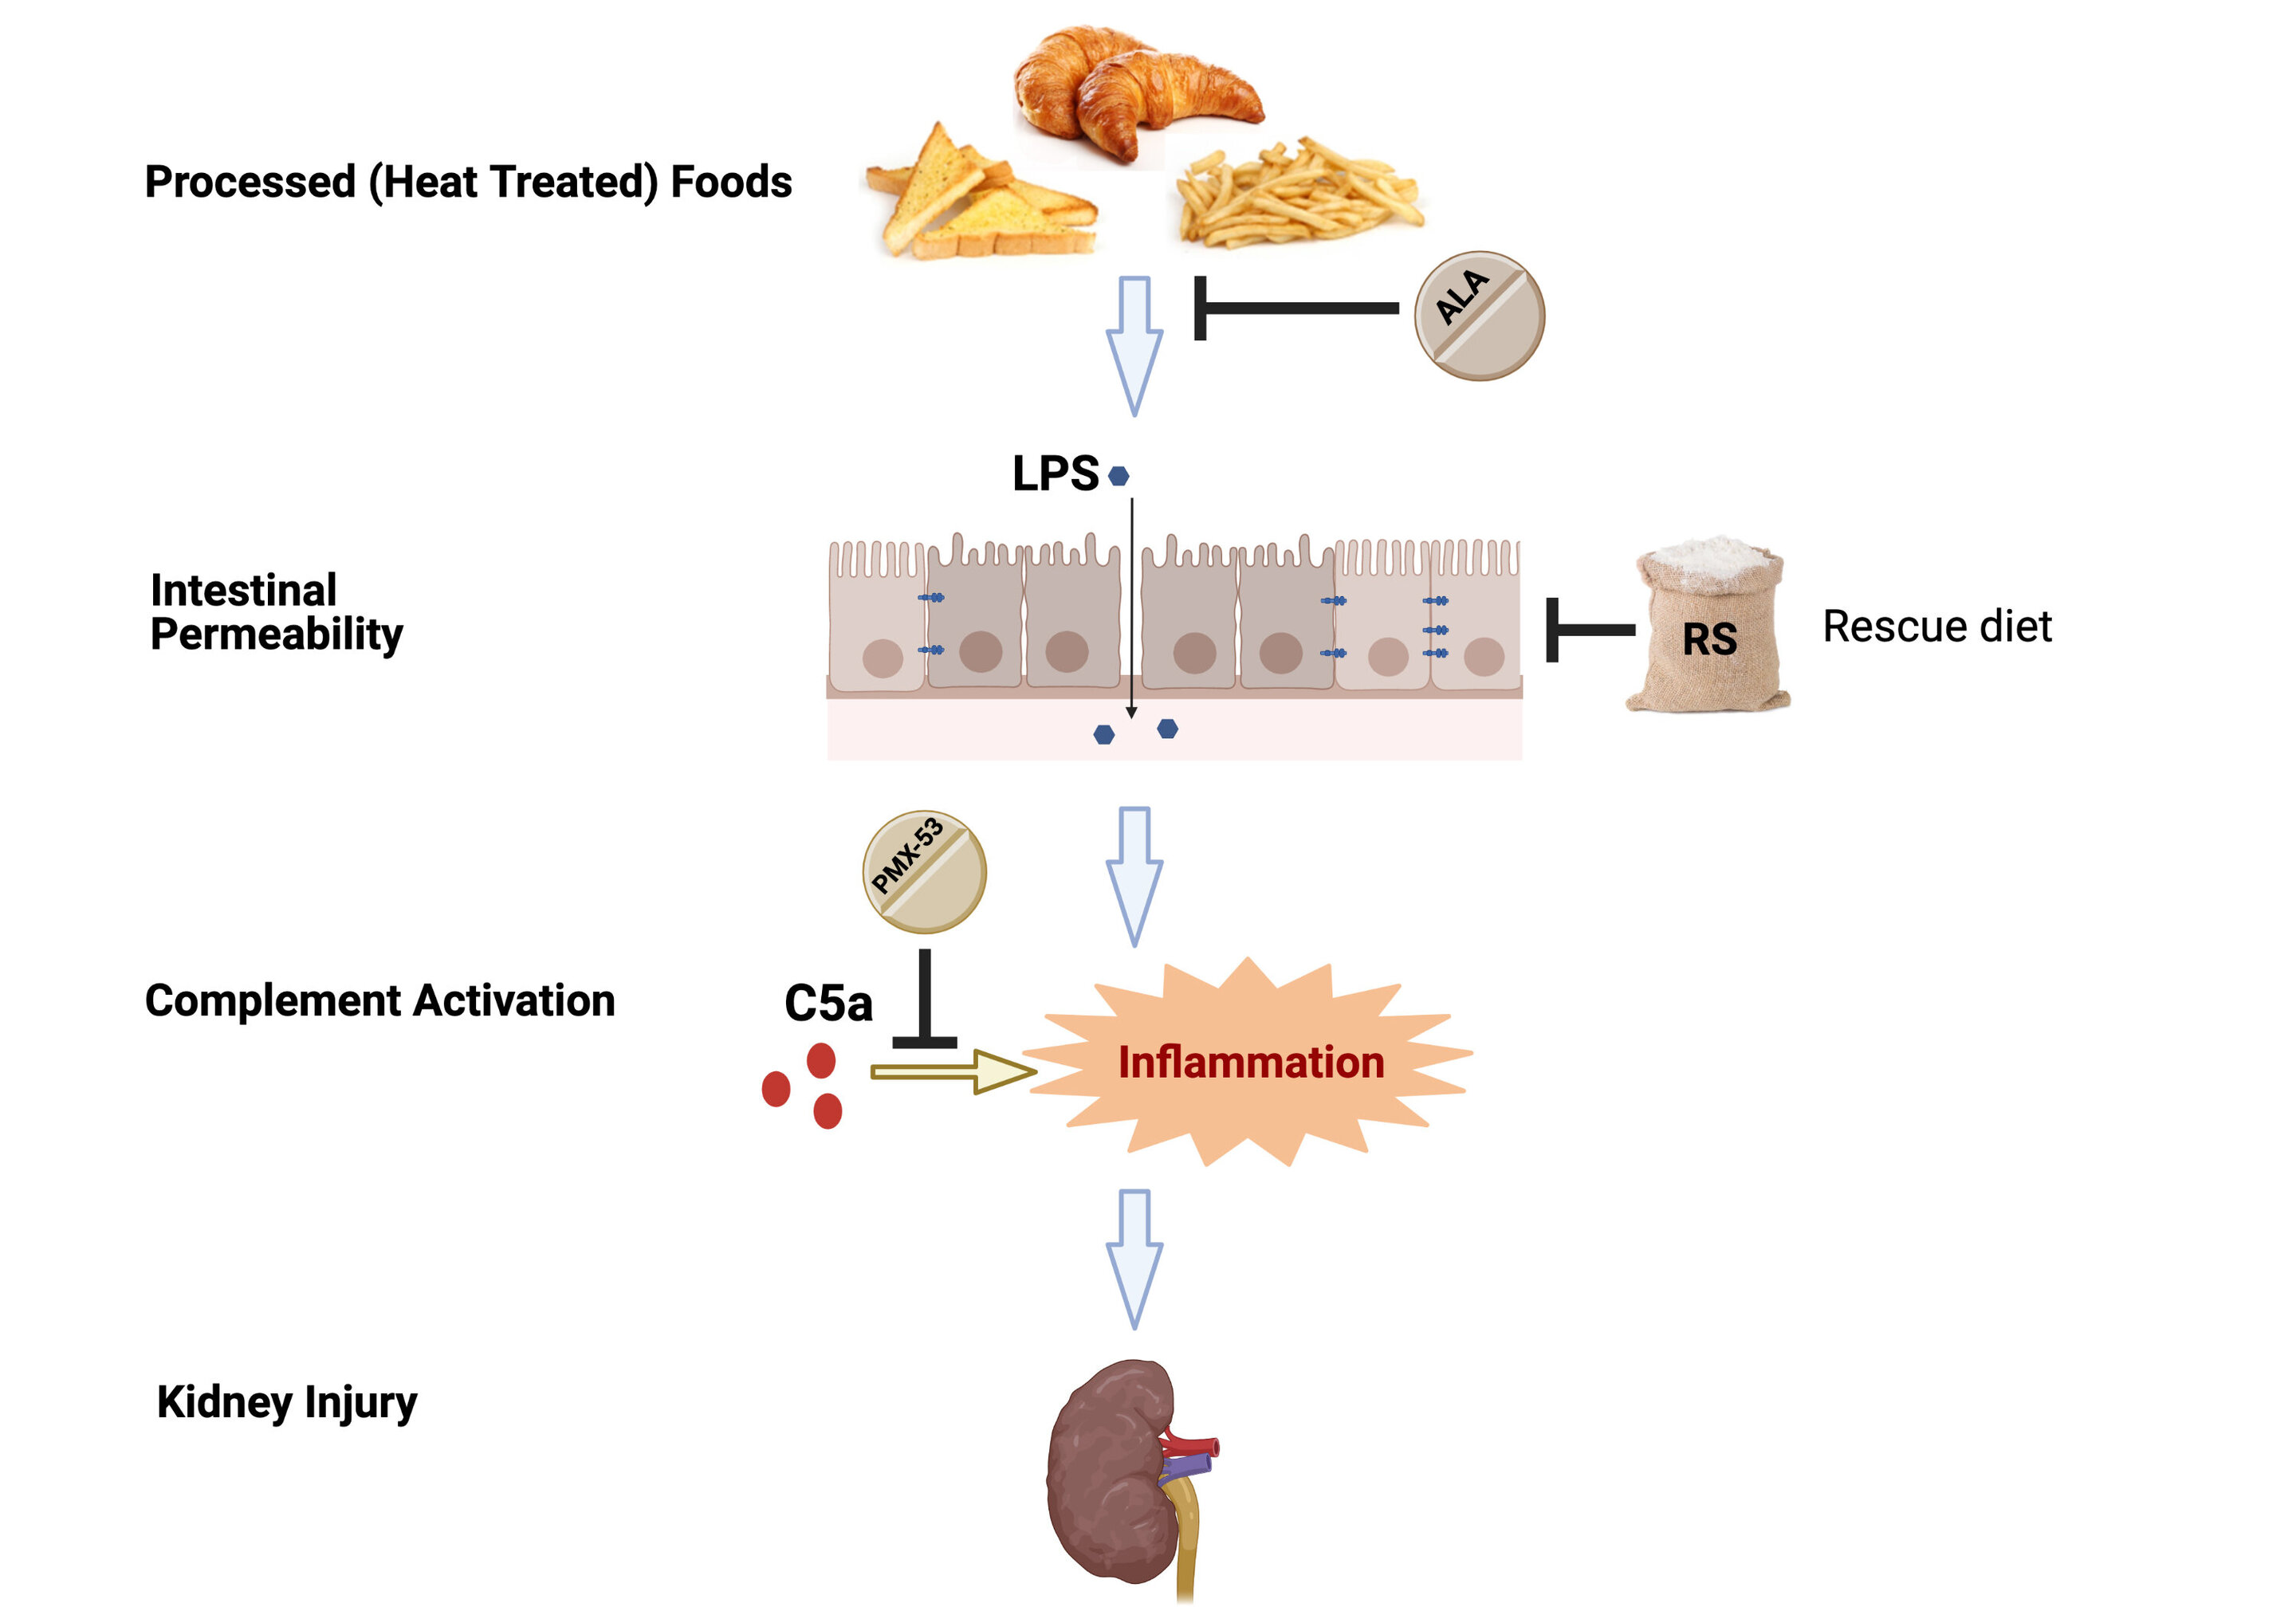 Why processed foods trigger chronic kidney disease